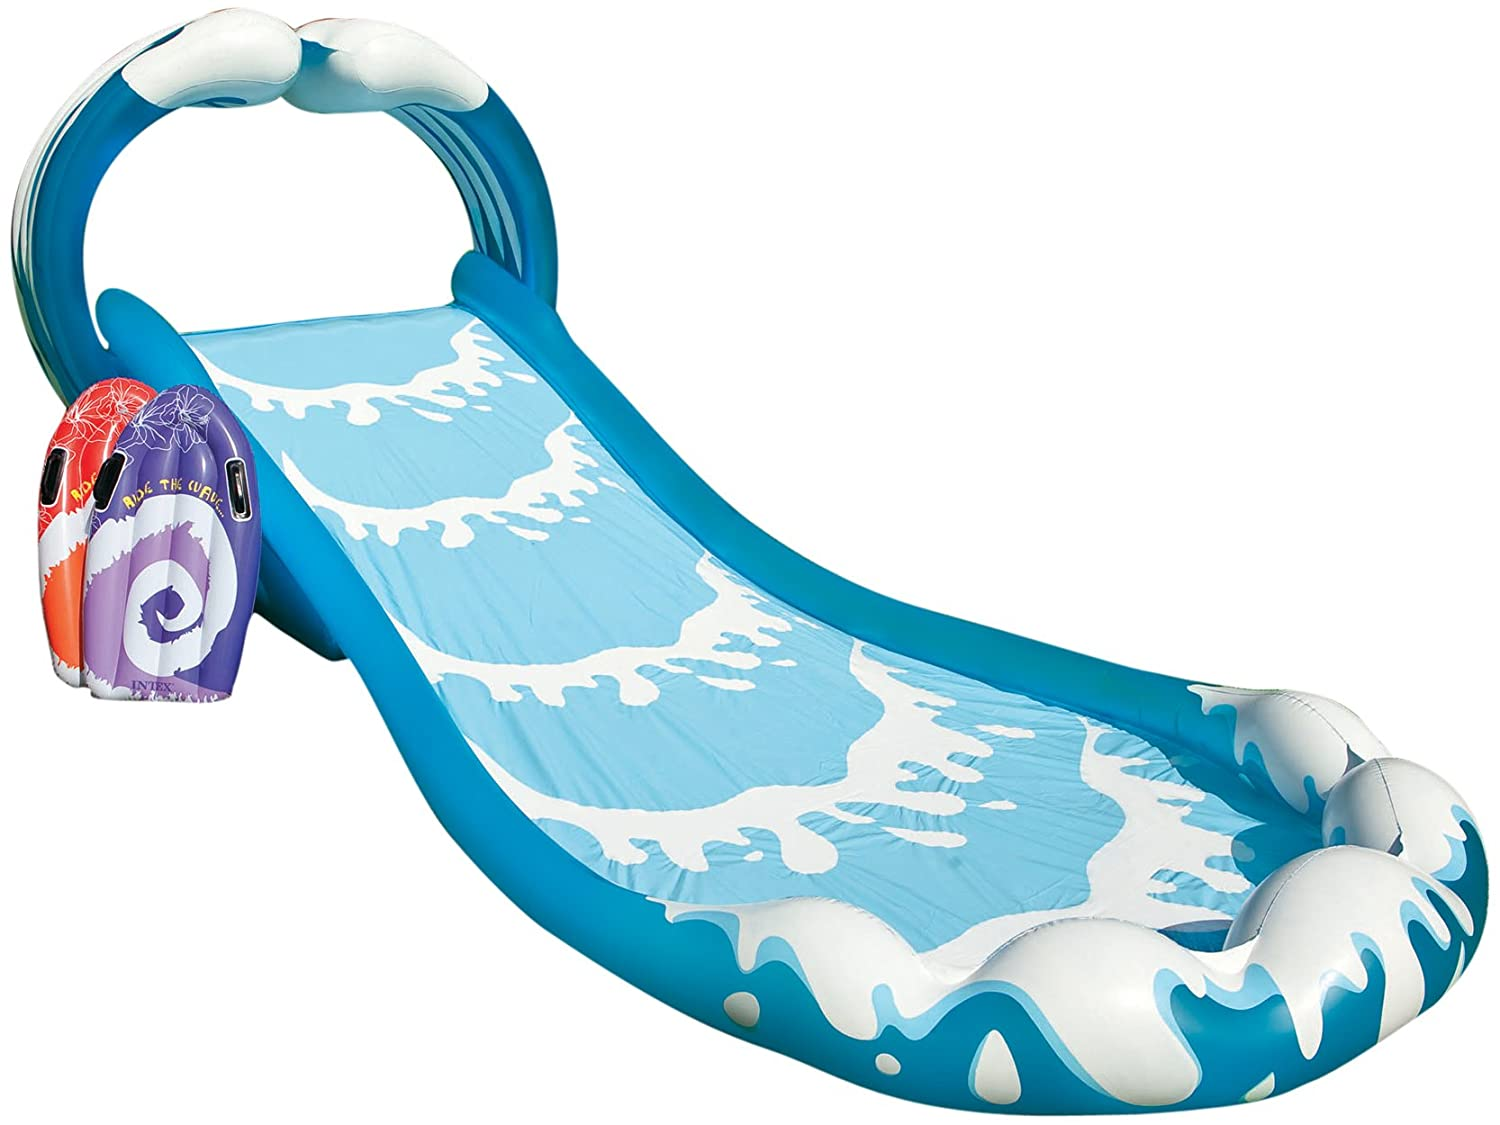 Intex Surf 'N Slide Inflatable